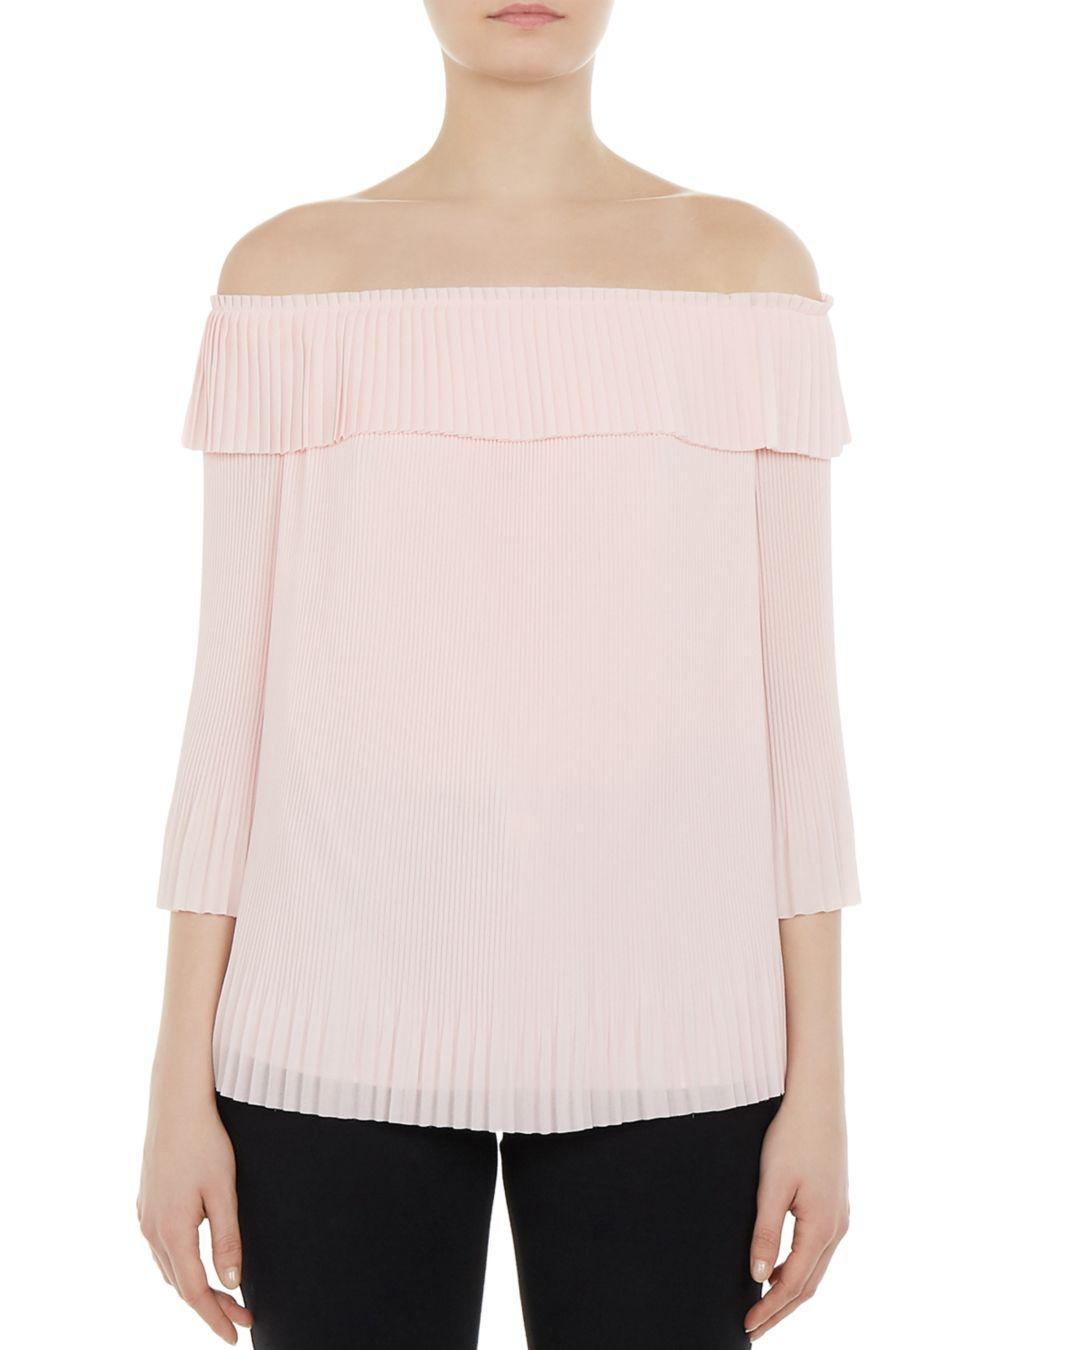 457c2c91ed237 Lyst - Ted Baker Perrey Off-the-shoulder Pleated Top in Pink